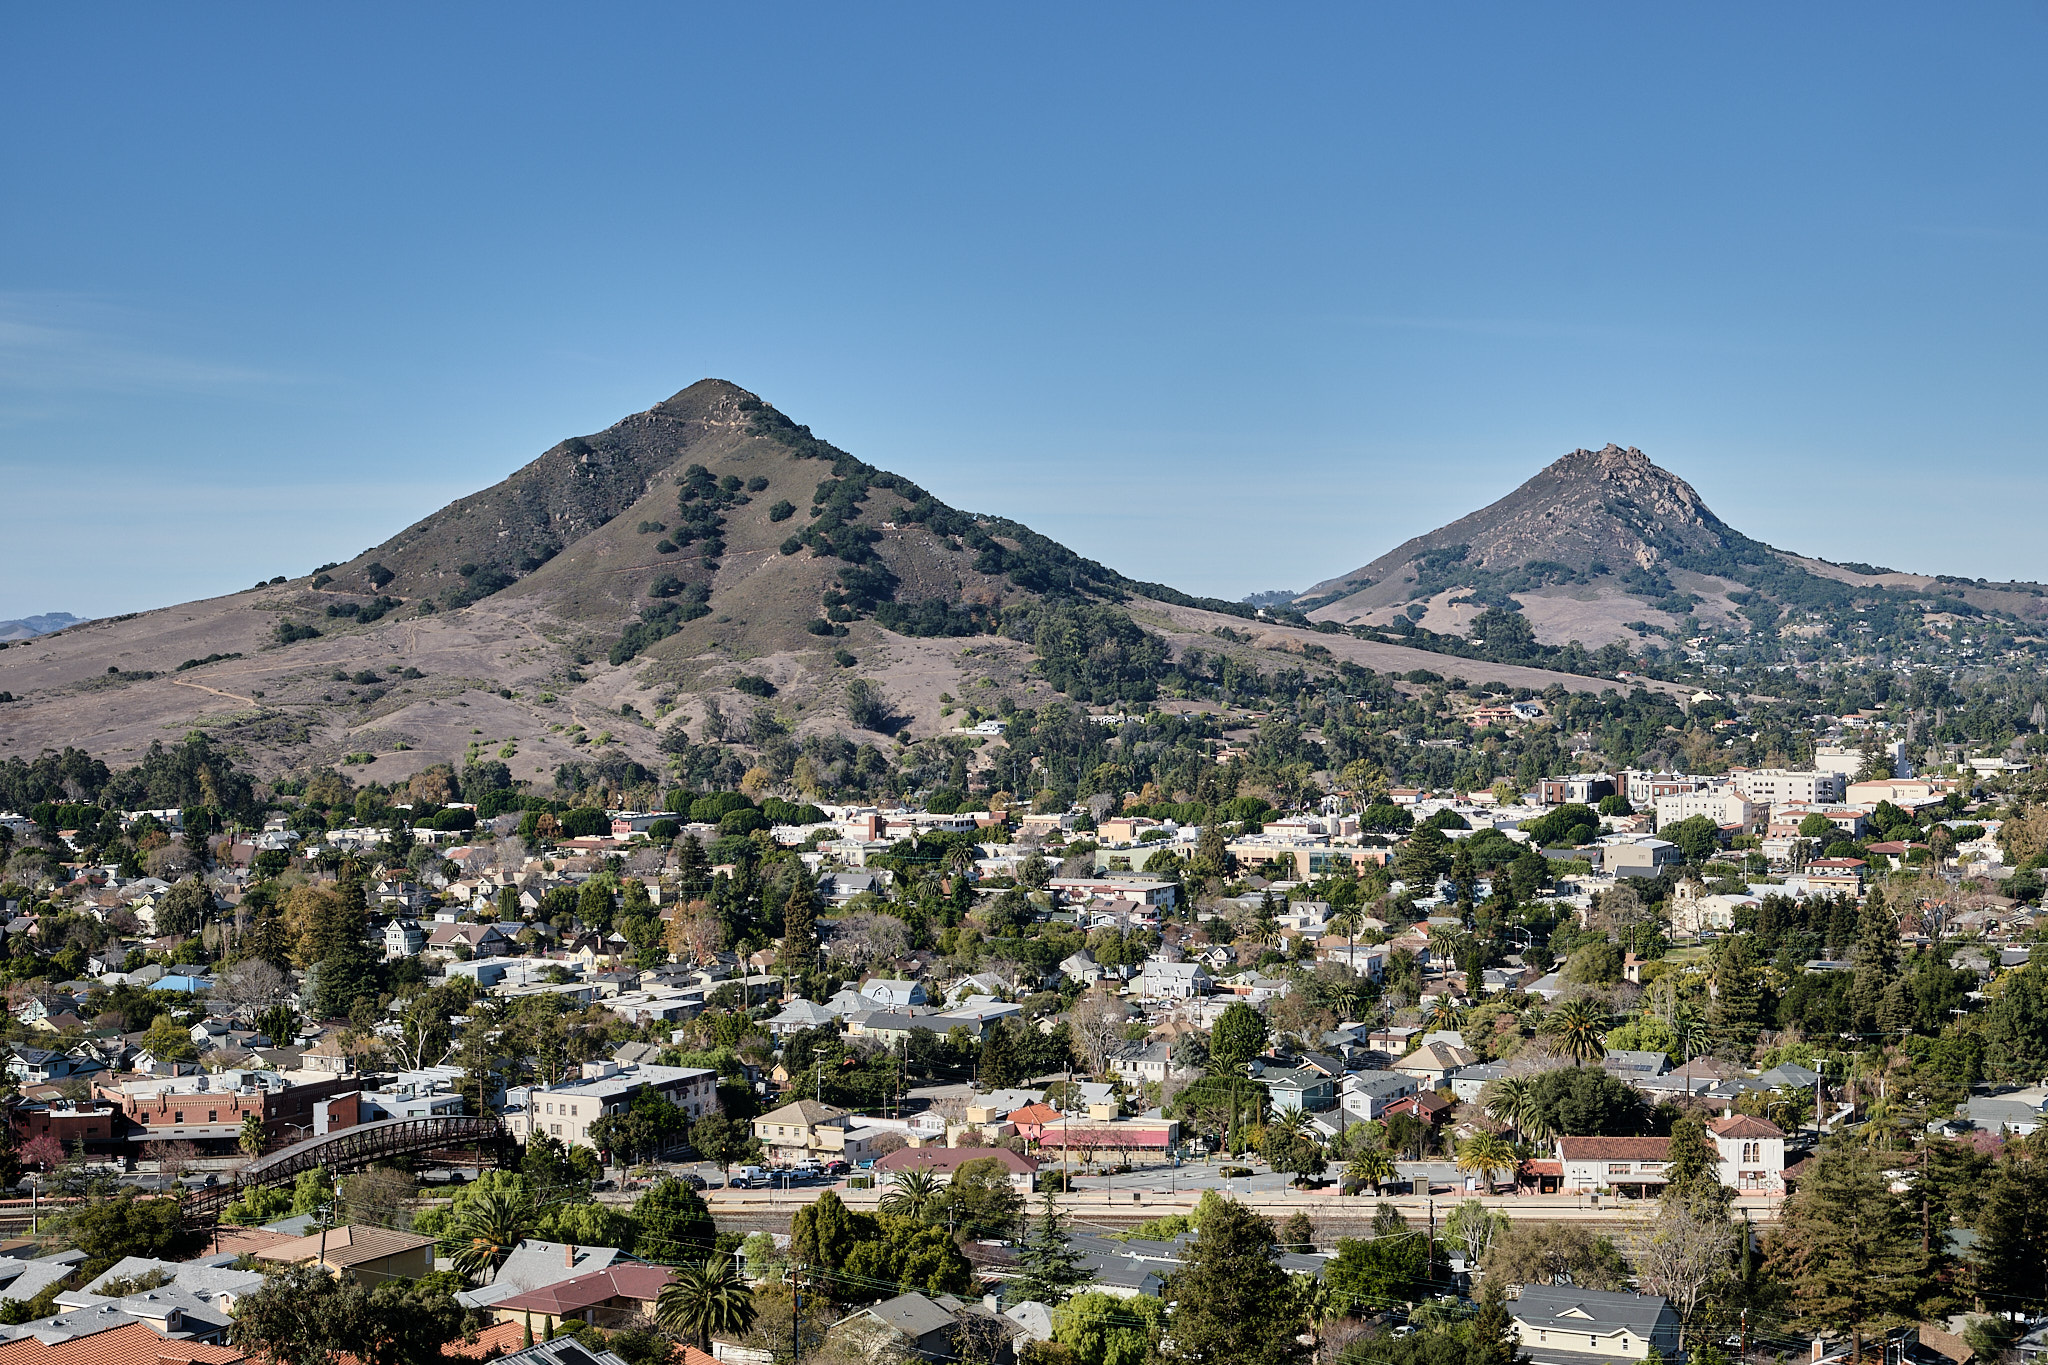 View of San Luis Obispo with Cerro San Luis and Bishop Peak